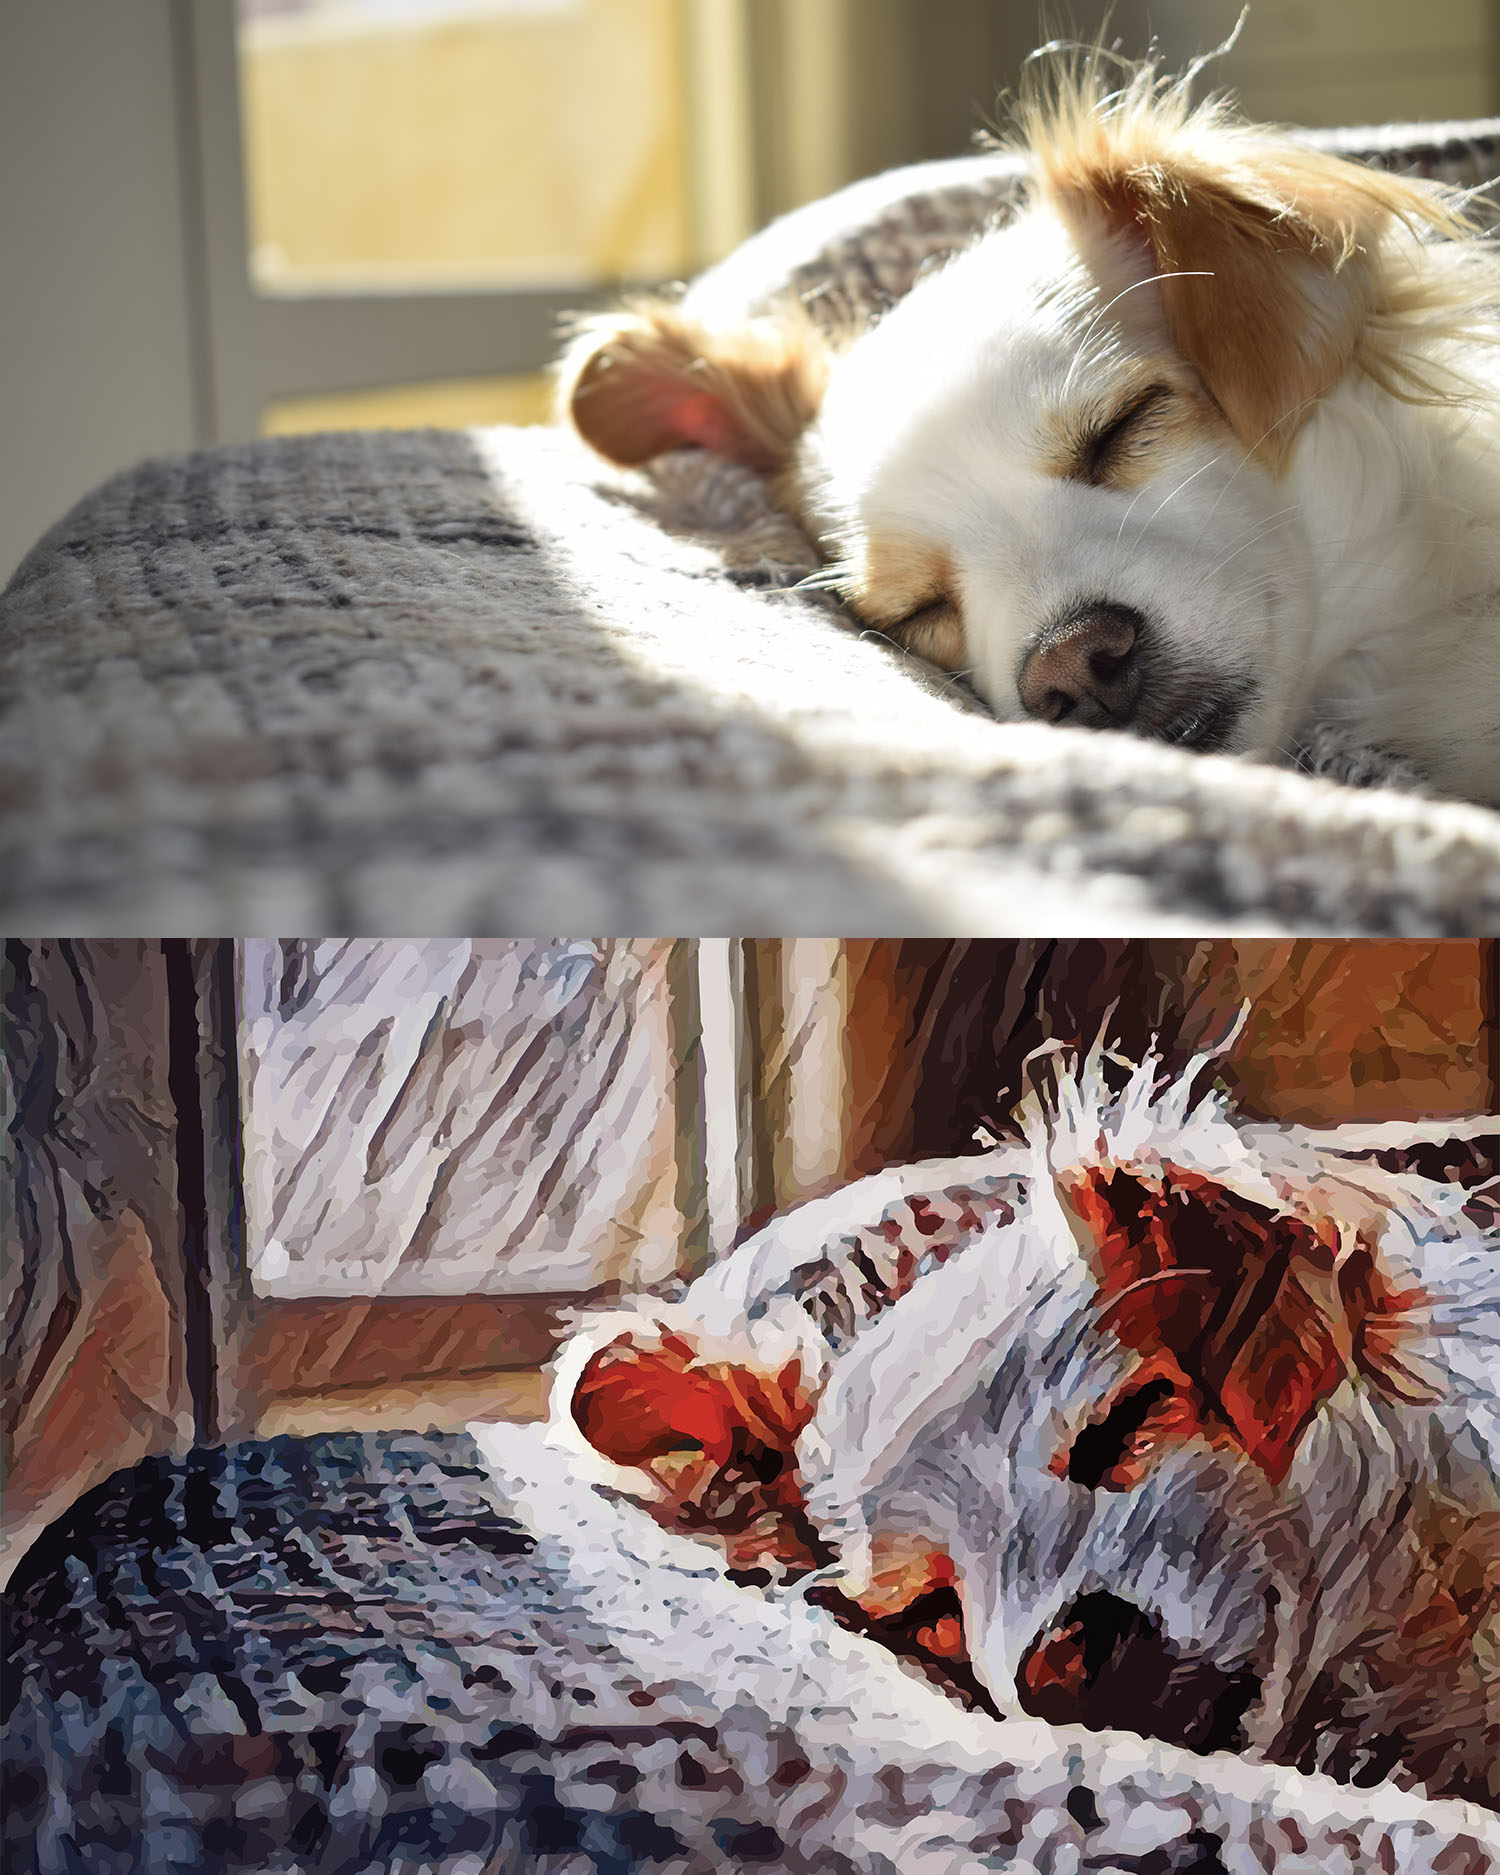 Before and after stylized image of a dog sleeping on a bed in the sun streaming in from a window